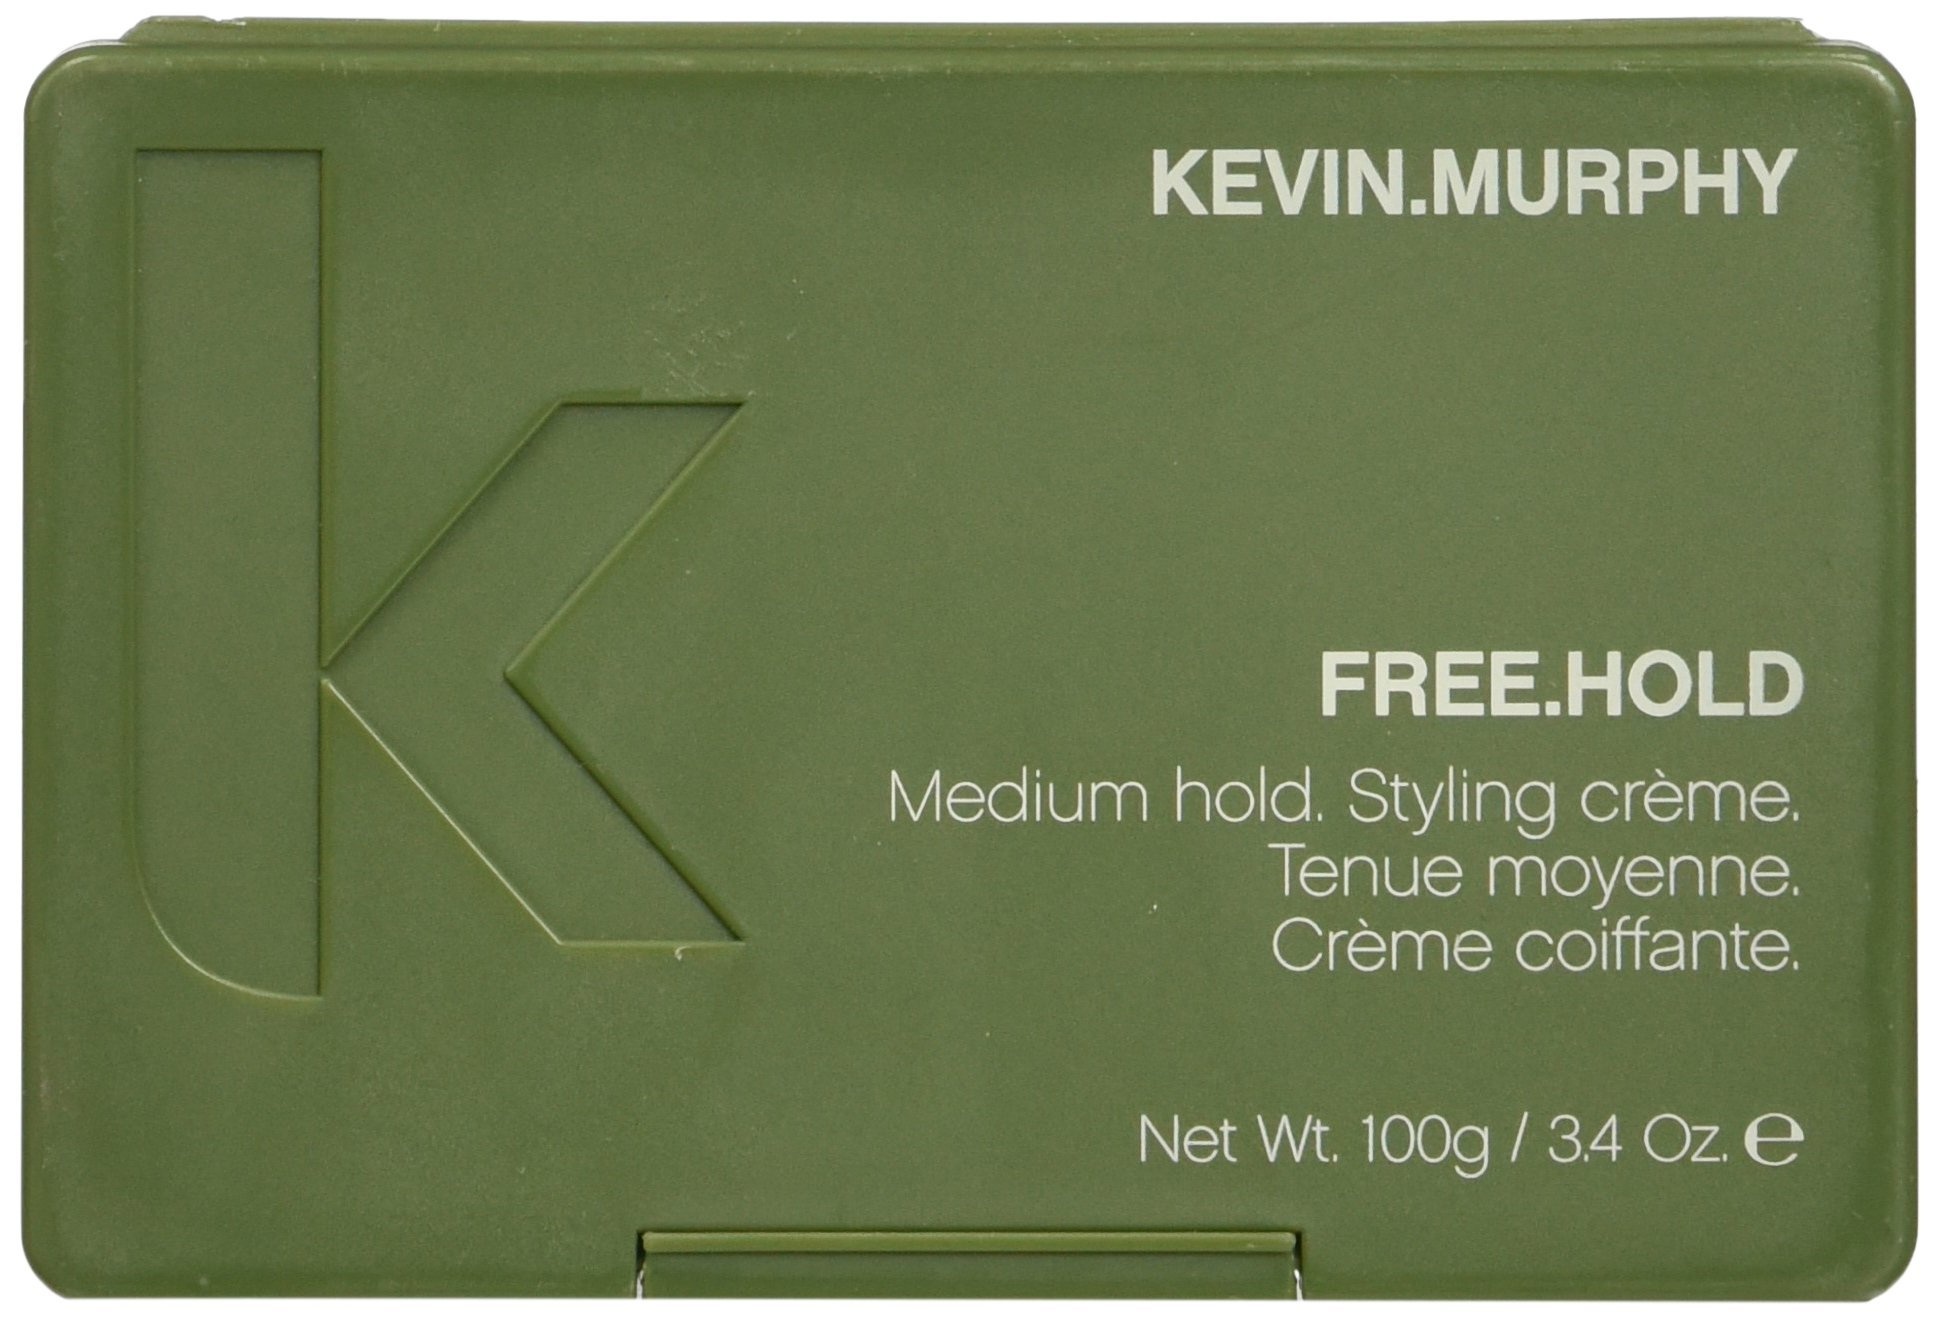 Kevin Murphy Free Hold Cream, 3.4 Ounce by Kevin Murphy